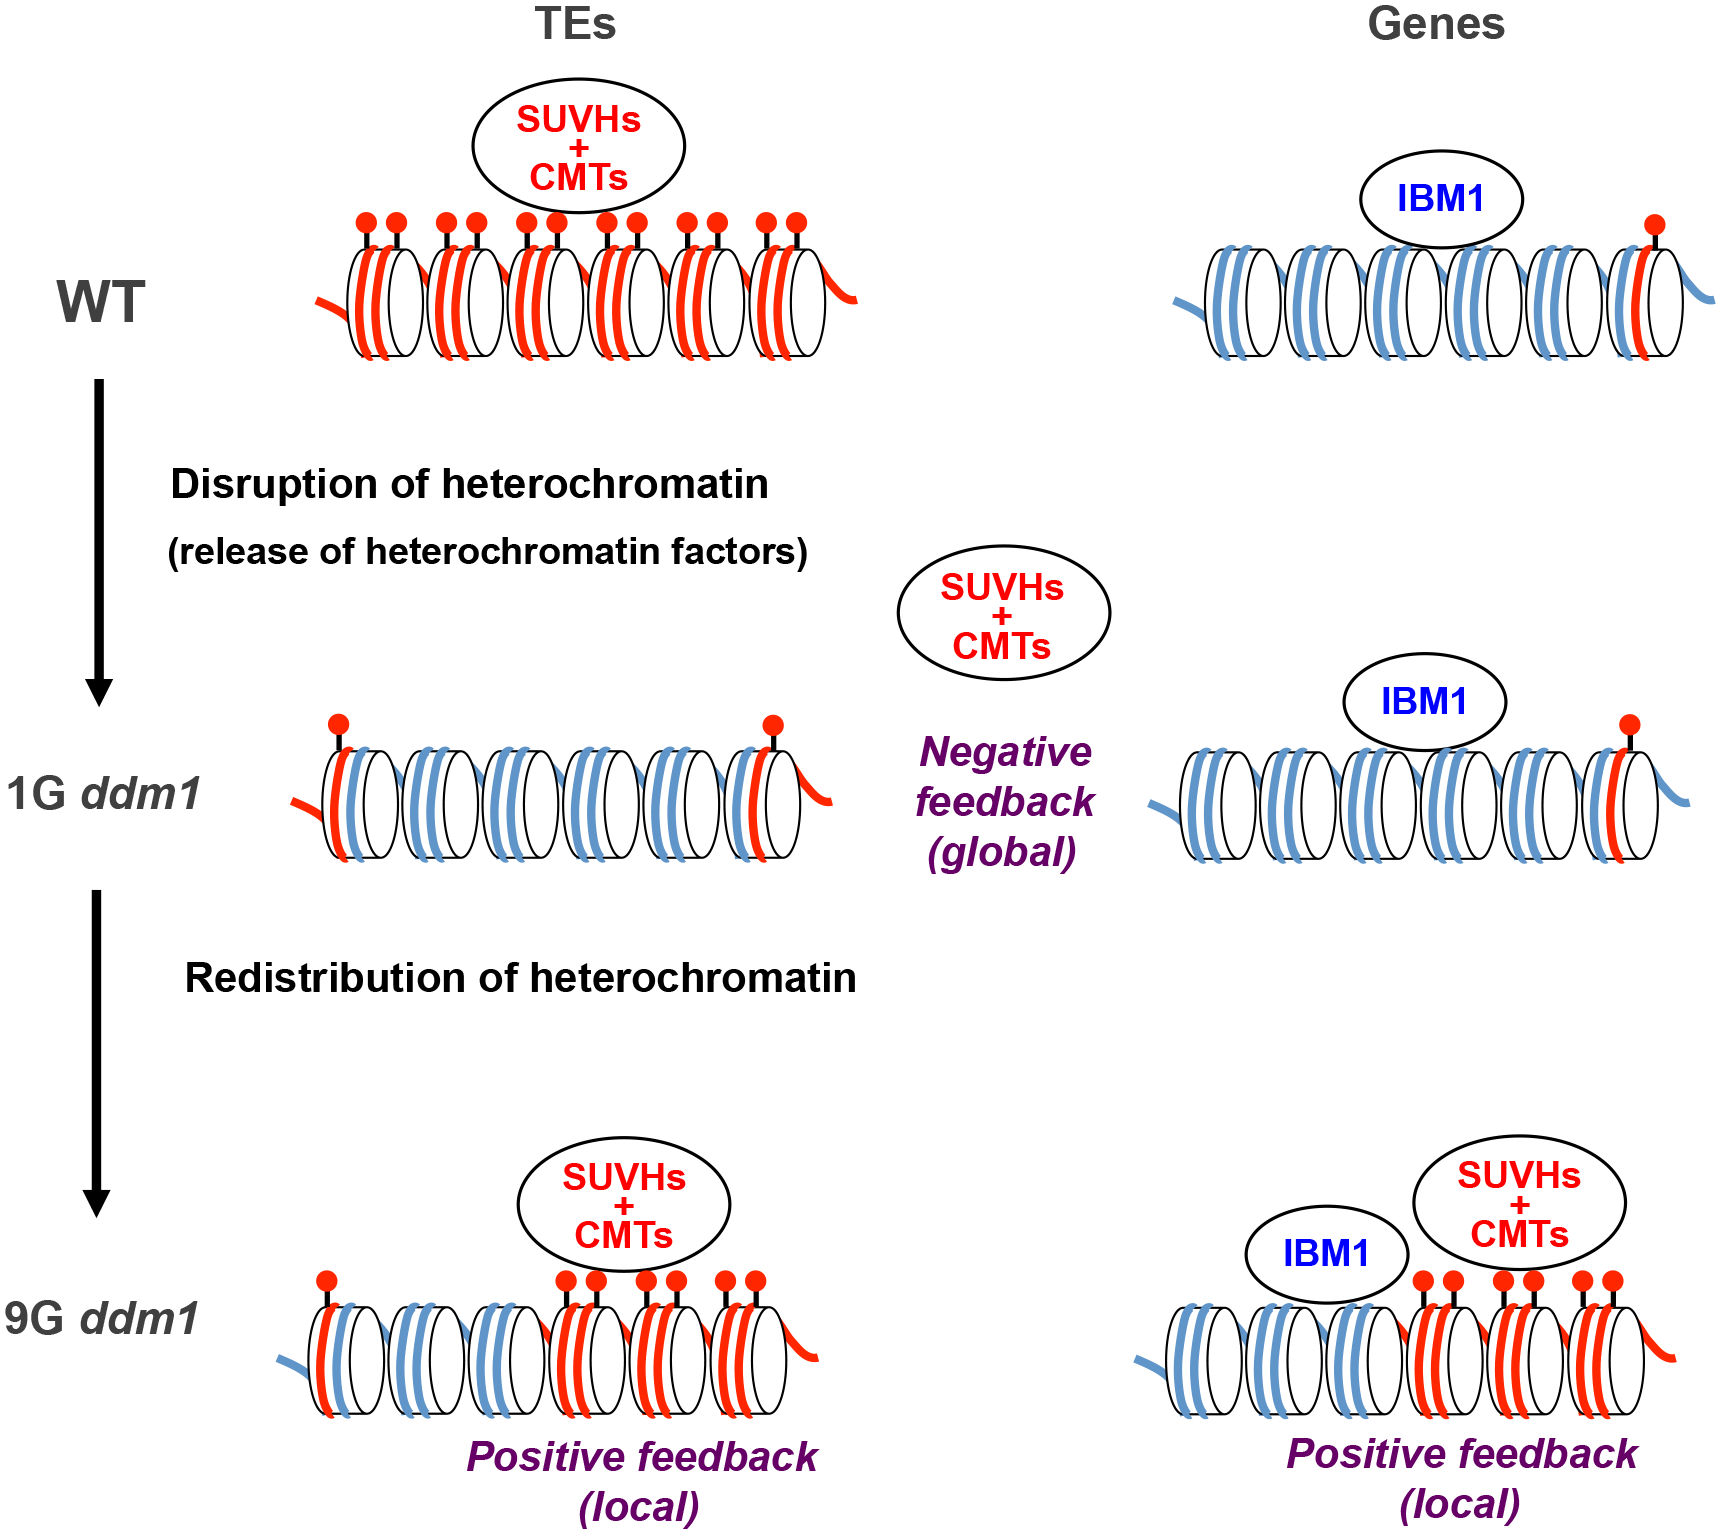 A model for the transgenerational heterochromatin redistribution.